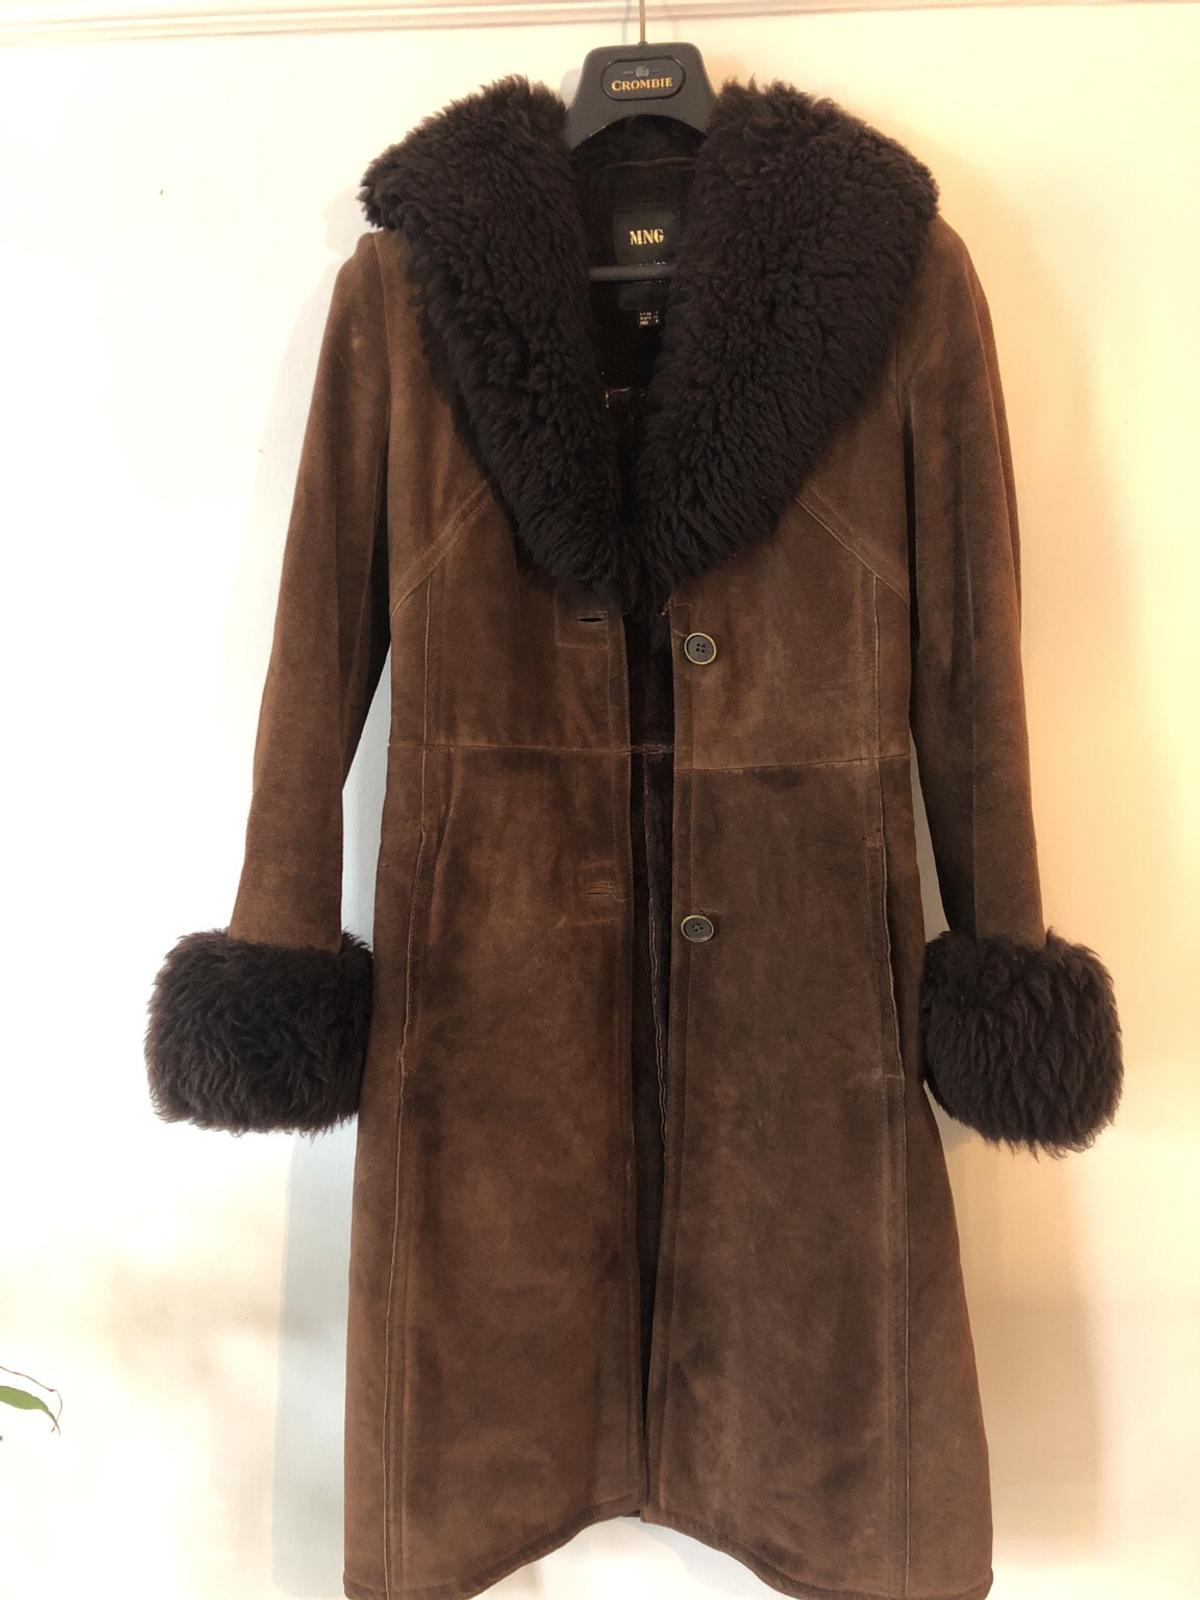 Mango Genuine Leather Coat Size 8 In Sw19 Wandsworth For 15 00 For